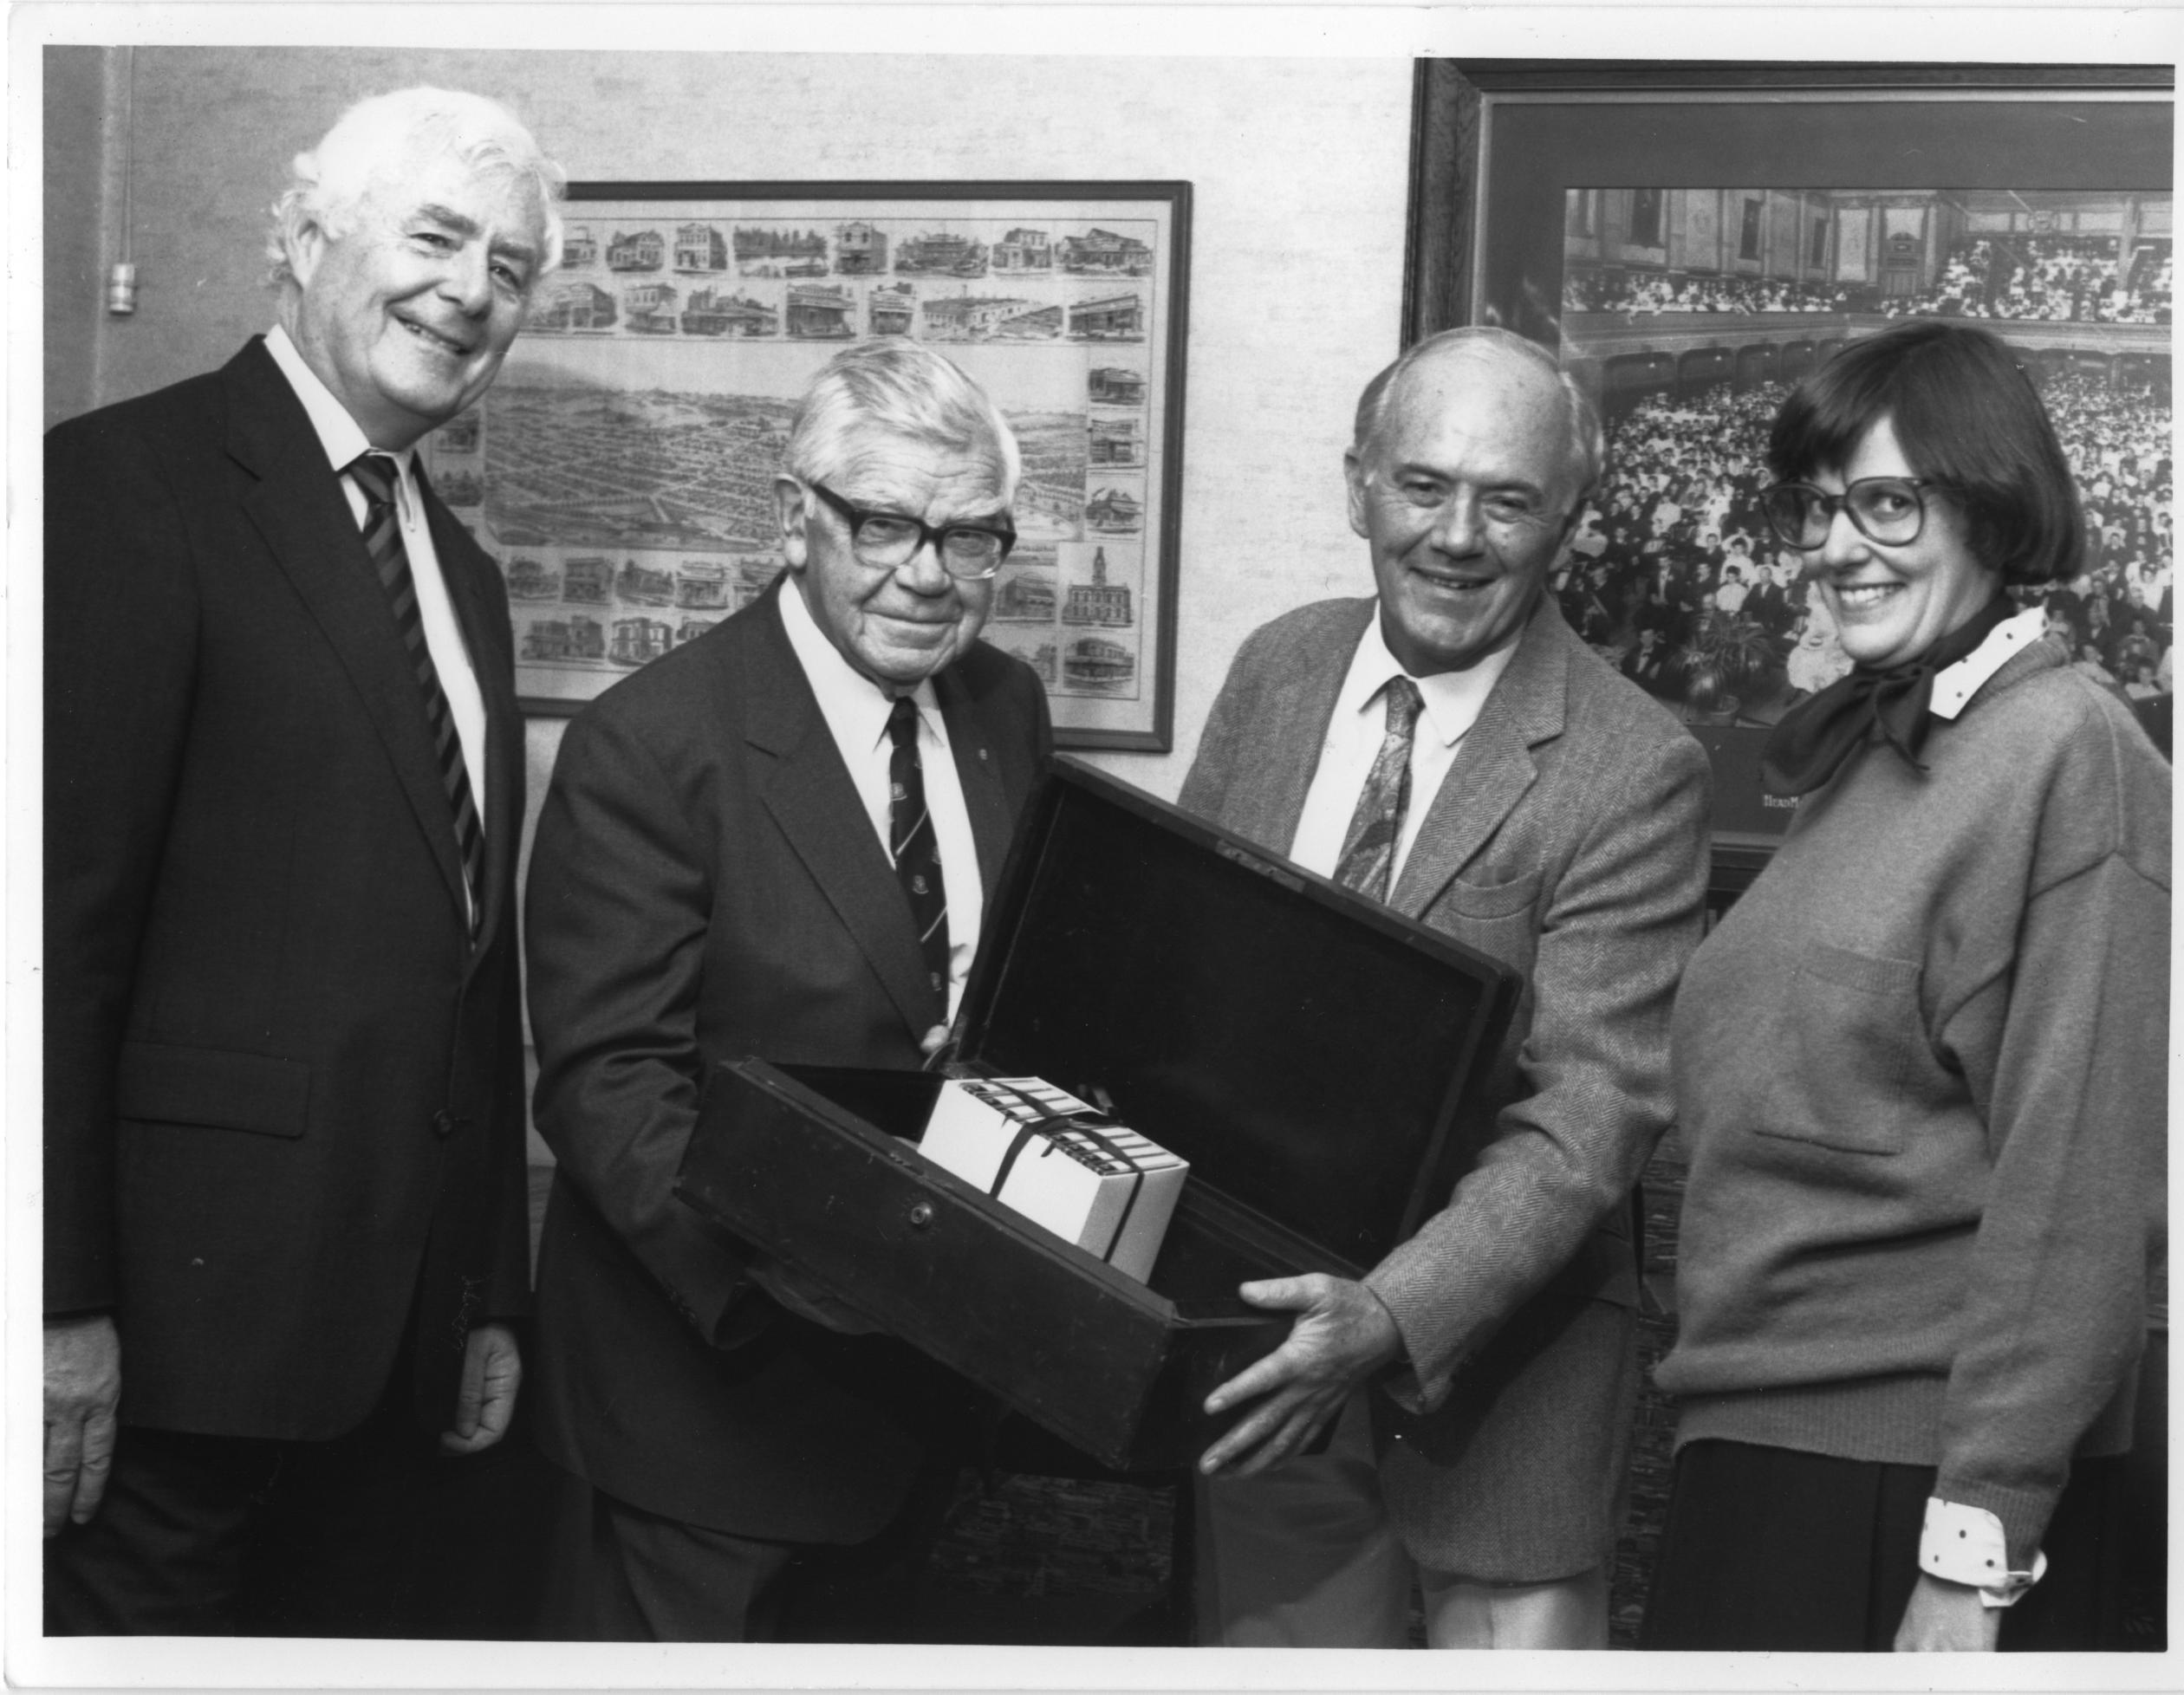 Professor John Power (left), with 'Pansy' Wright, Frank Strahan and Guinevere Threlkeld